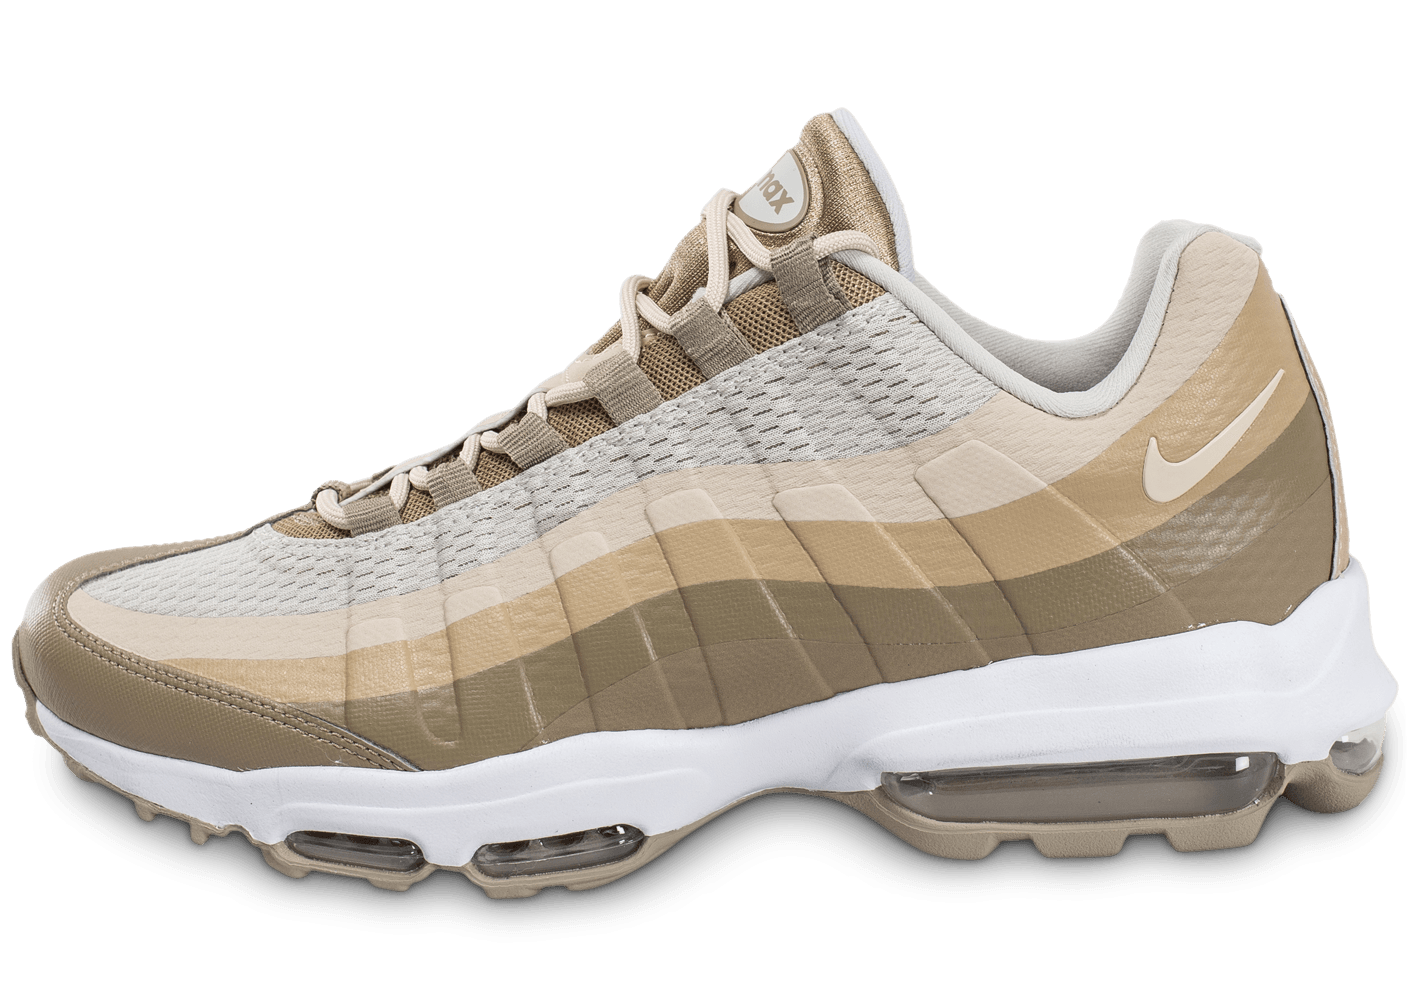 f32050f29a5 ... chaussures nike air max 95 ultra essential beige vue exterieure